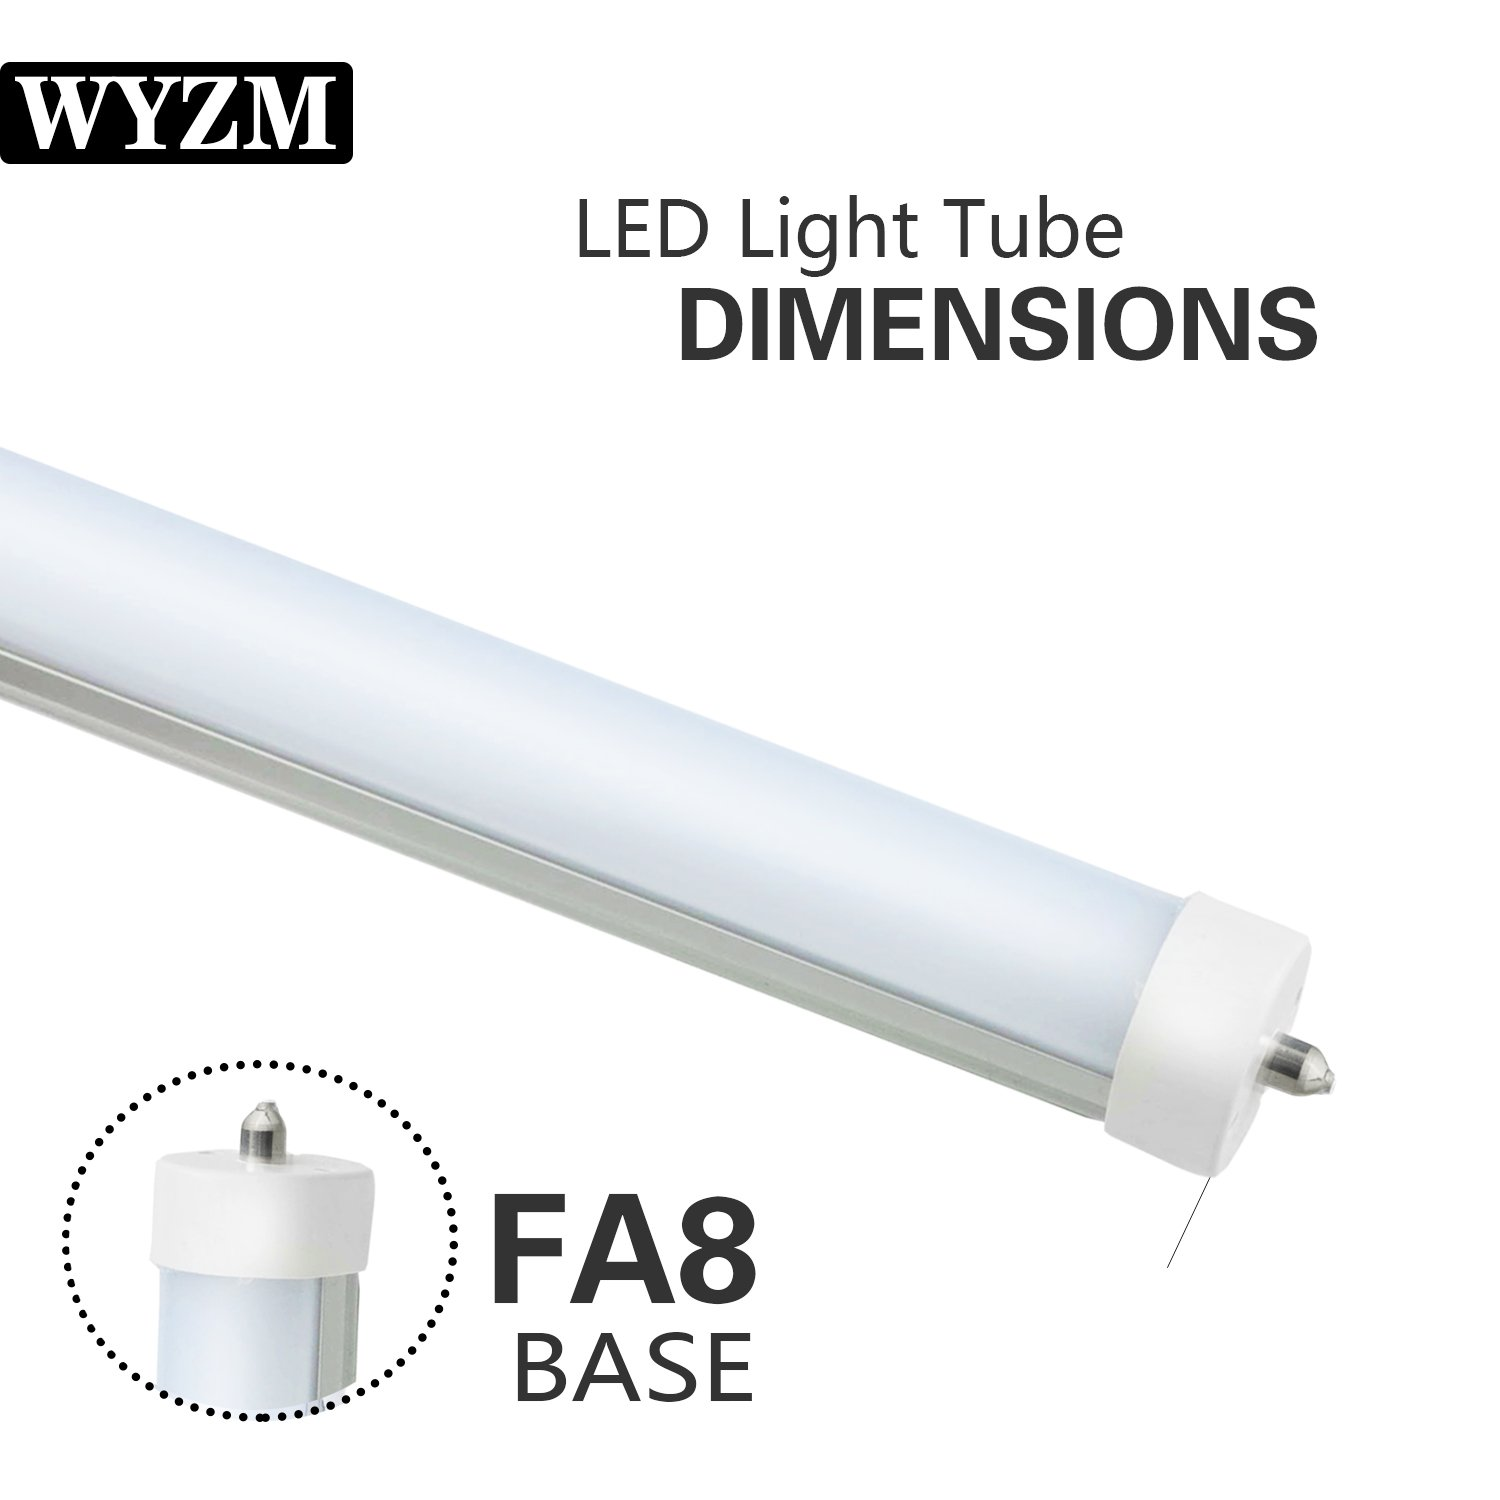 8ft LED Light Tubes for Fluorescent Fixtures,96'' F96T12 LED Tube,Replacement,120V and 277V Input, 5500K Daylight White,40Watt 4000LM Super Bright (4PCS 5500K Daylight White) by WYZM (Image #3)